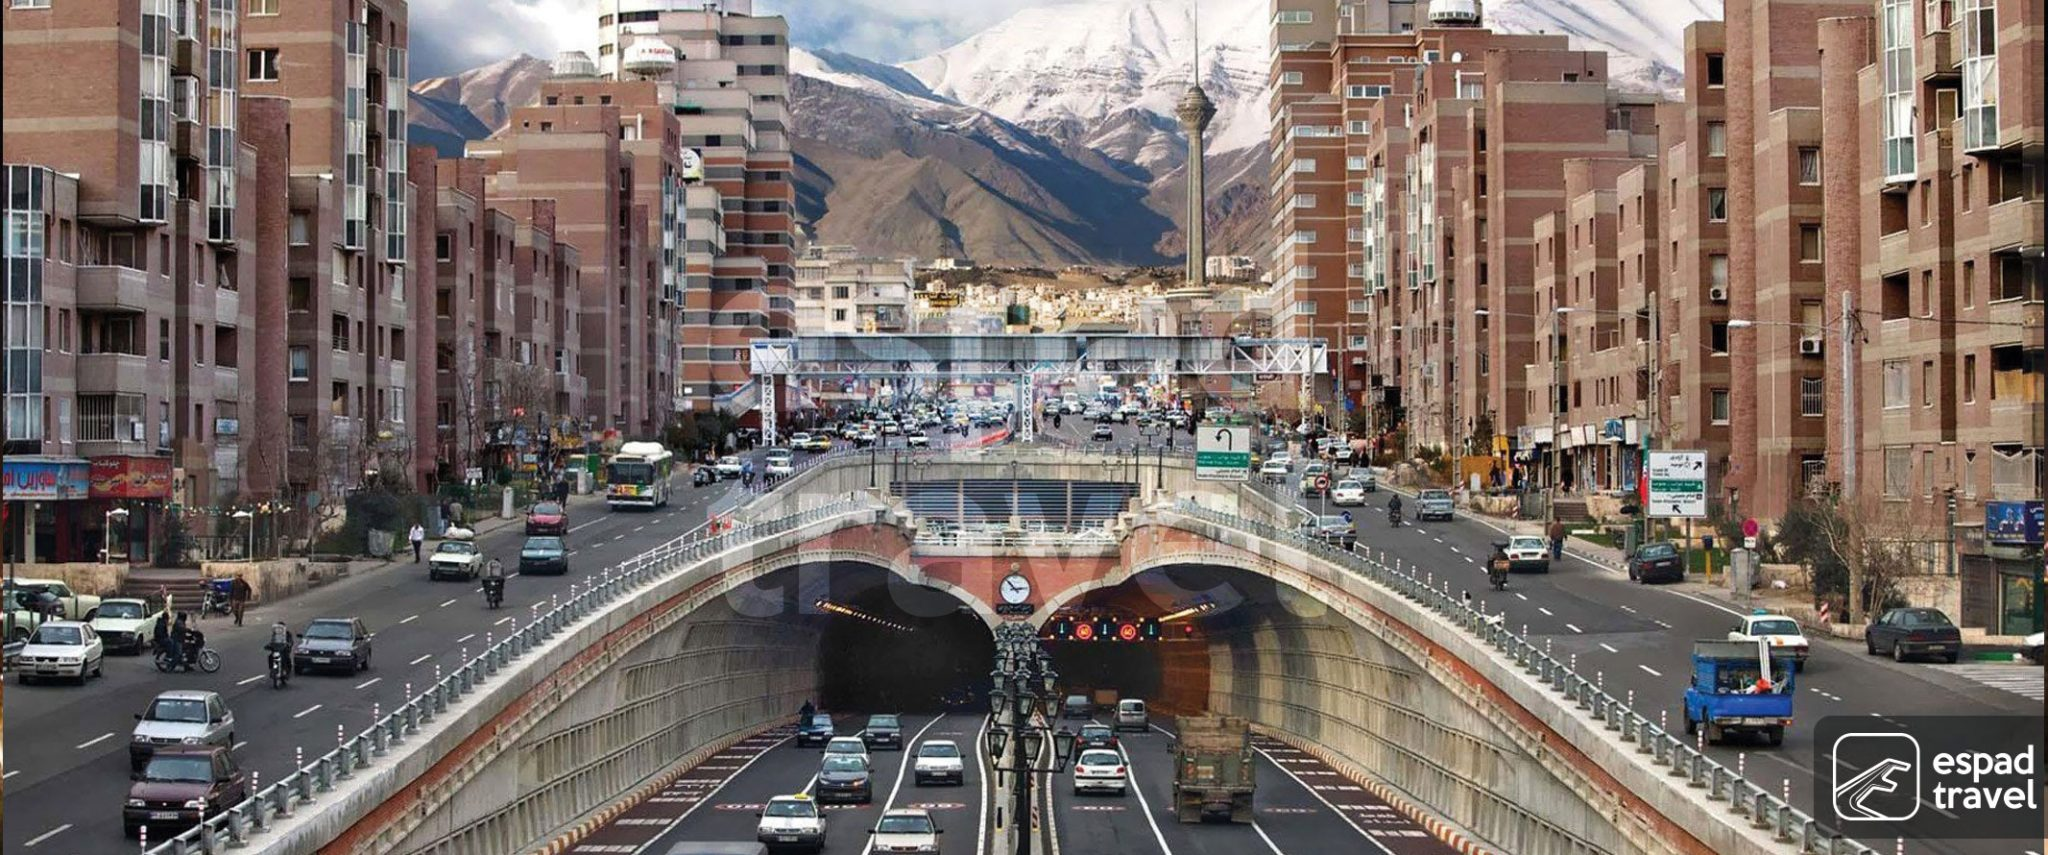 Tohid Tunnel Tehran